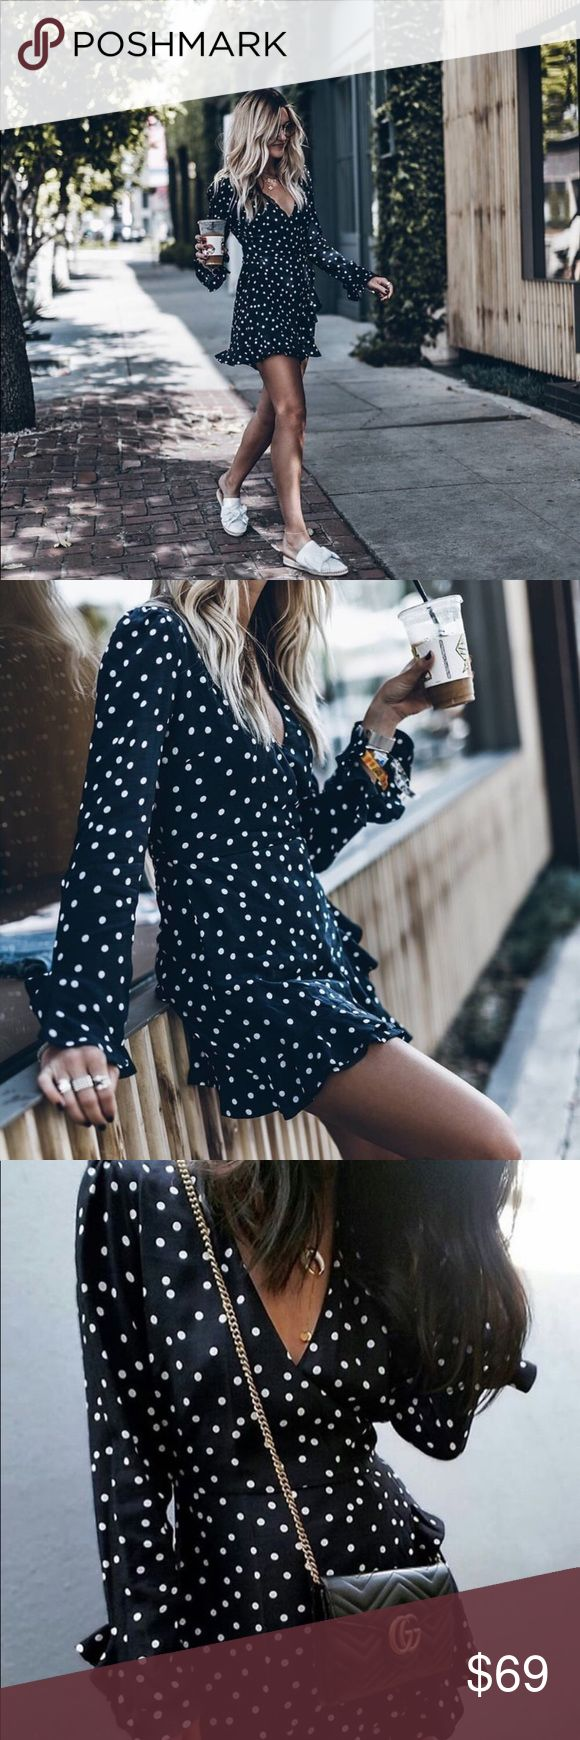 Zara Navy Polka Dot Romper small blogger favorite Worn twice, in great condition. Long sleeve with wrap front. Seriously so cute on! Only parting with it because the two times I wore it, I had lots of pictures so, you know how that goes. Size small. Runs true to size Zara Pants Jumpsuits & Rompers